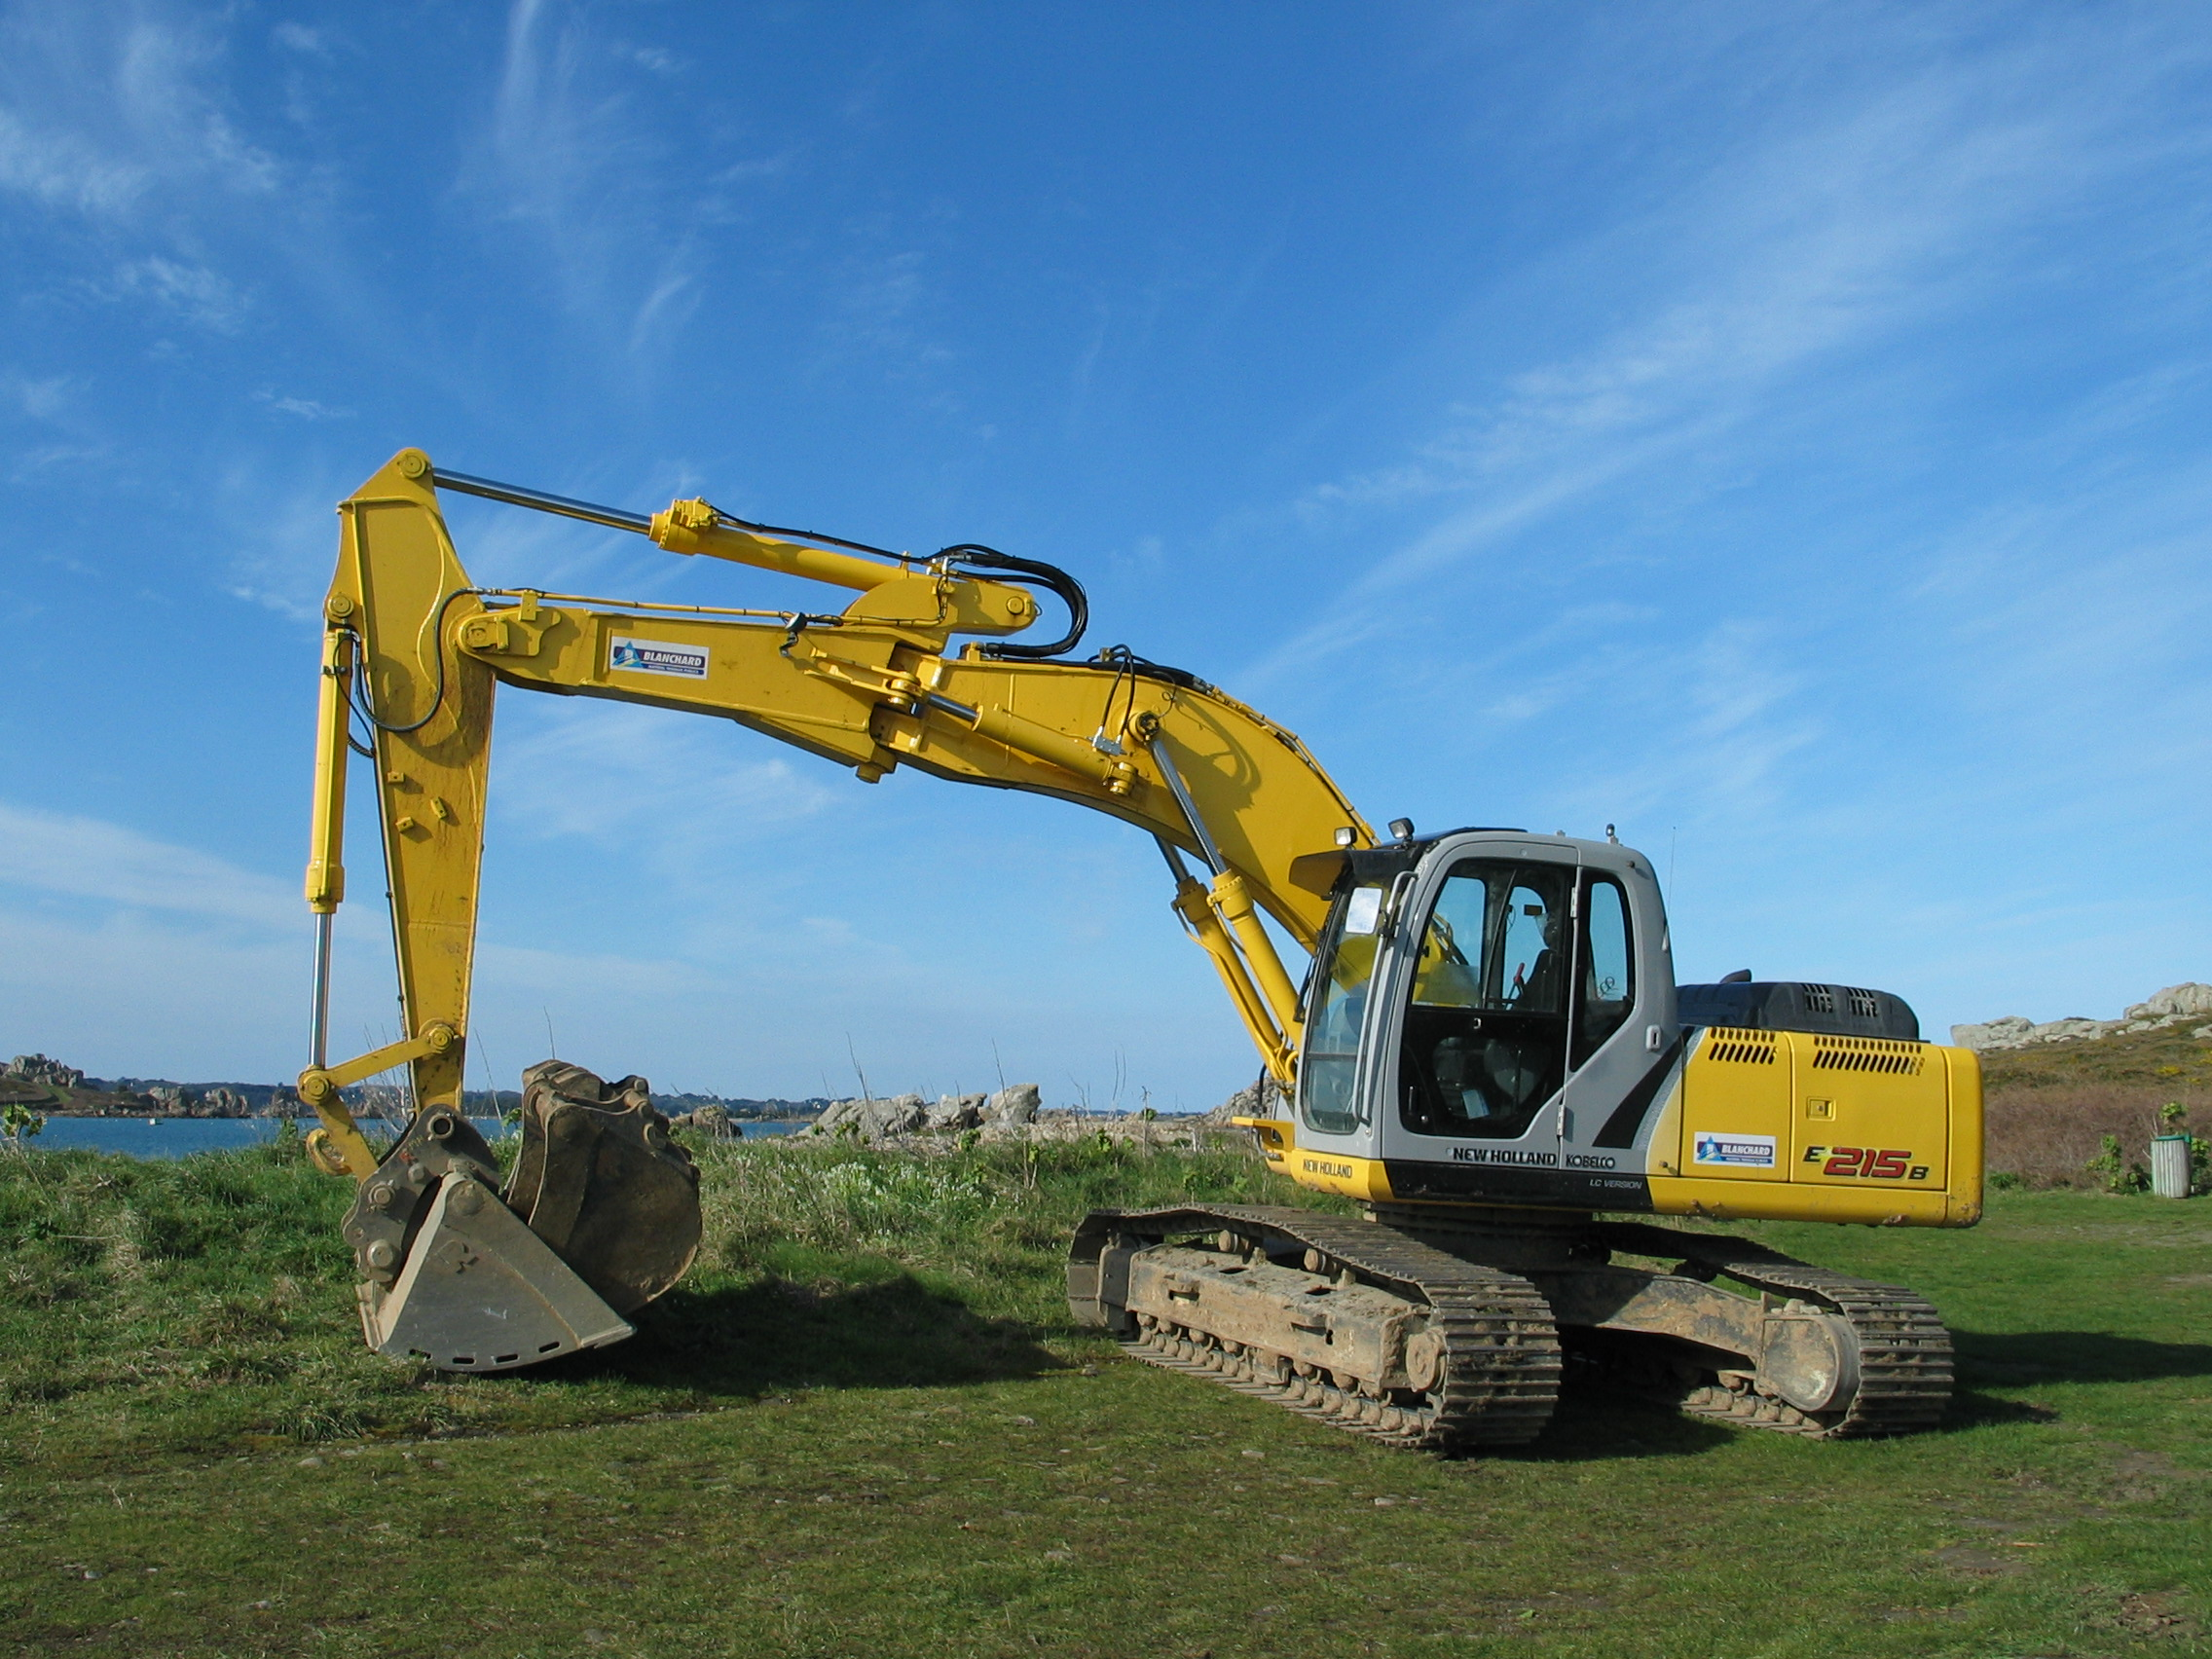 http://upload.wikimedia.org/wikipedia/commons/0/0b/Excavator_in_Brittany_France.JPG